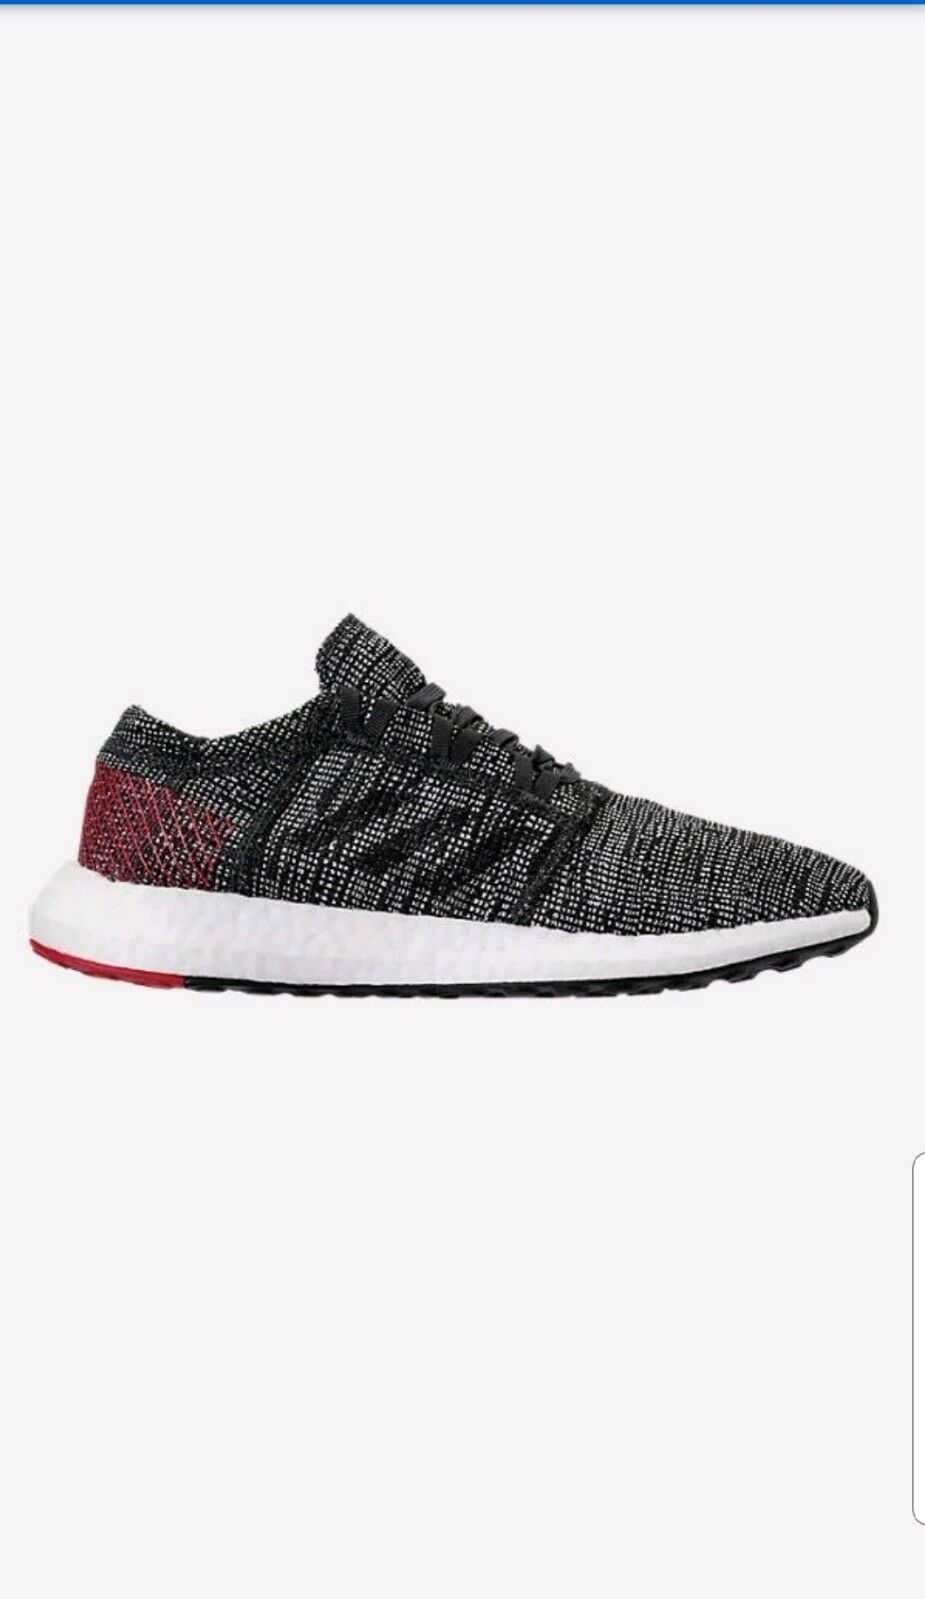 Adidas Mens Size 9.5 Pureboost GO Running shoes Black Scarlet AH 2323